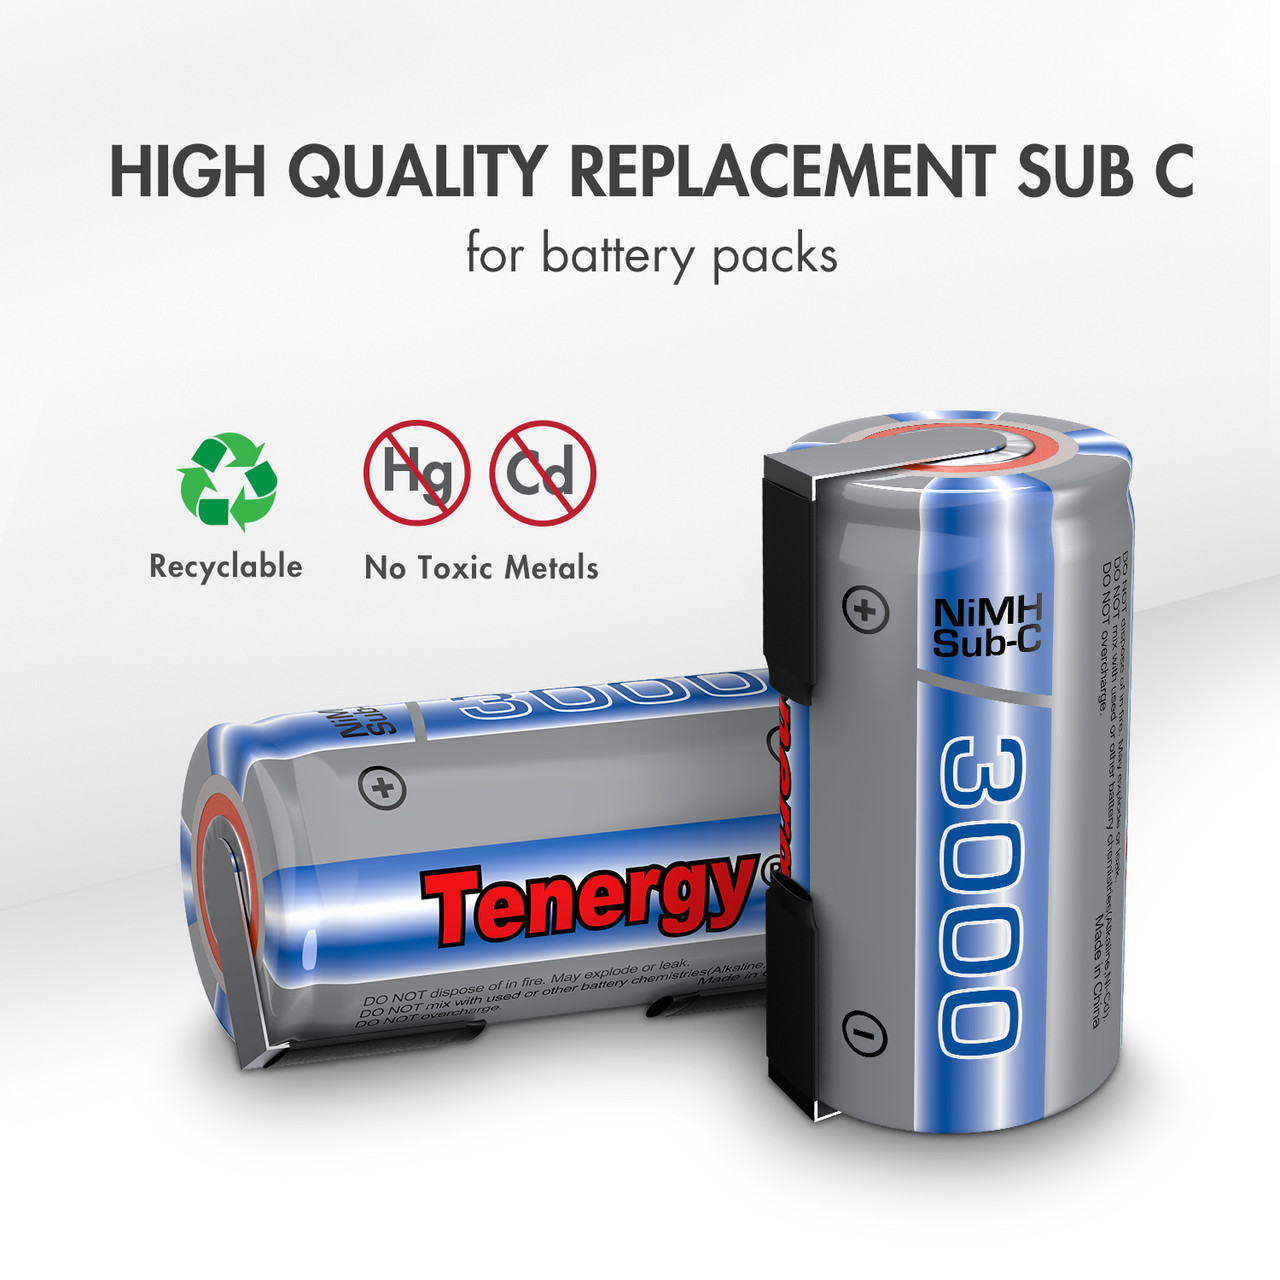 15pcs Tenergy Propel Sub C 3000mAh NiMH Rechargeable Batteries, with Tabs